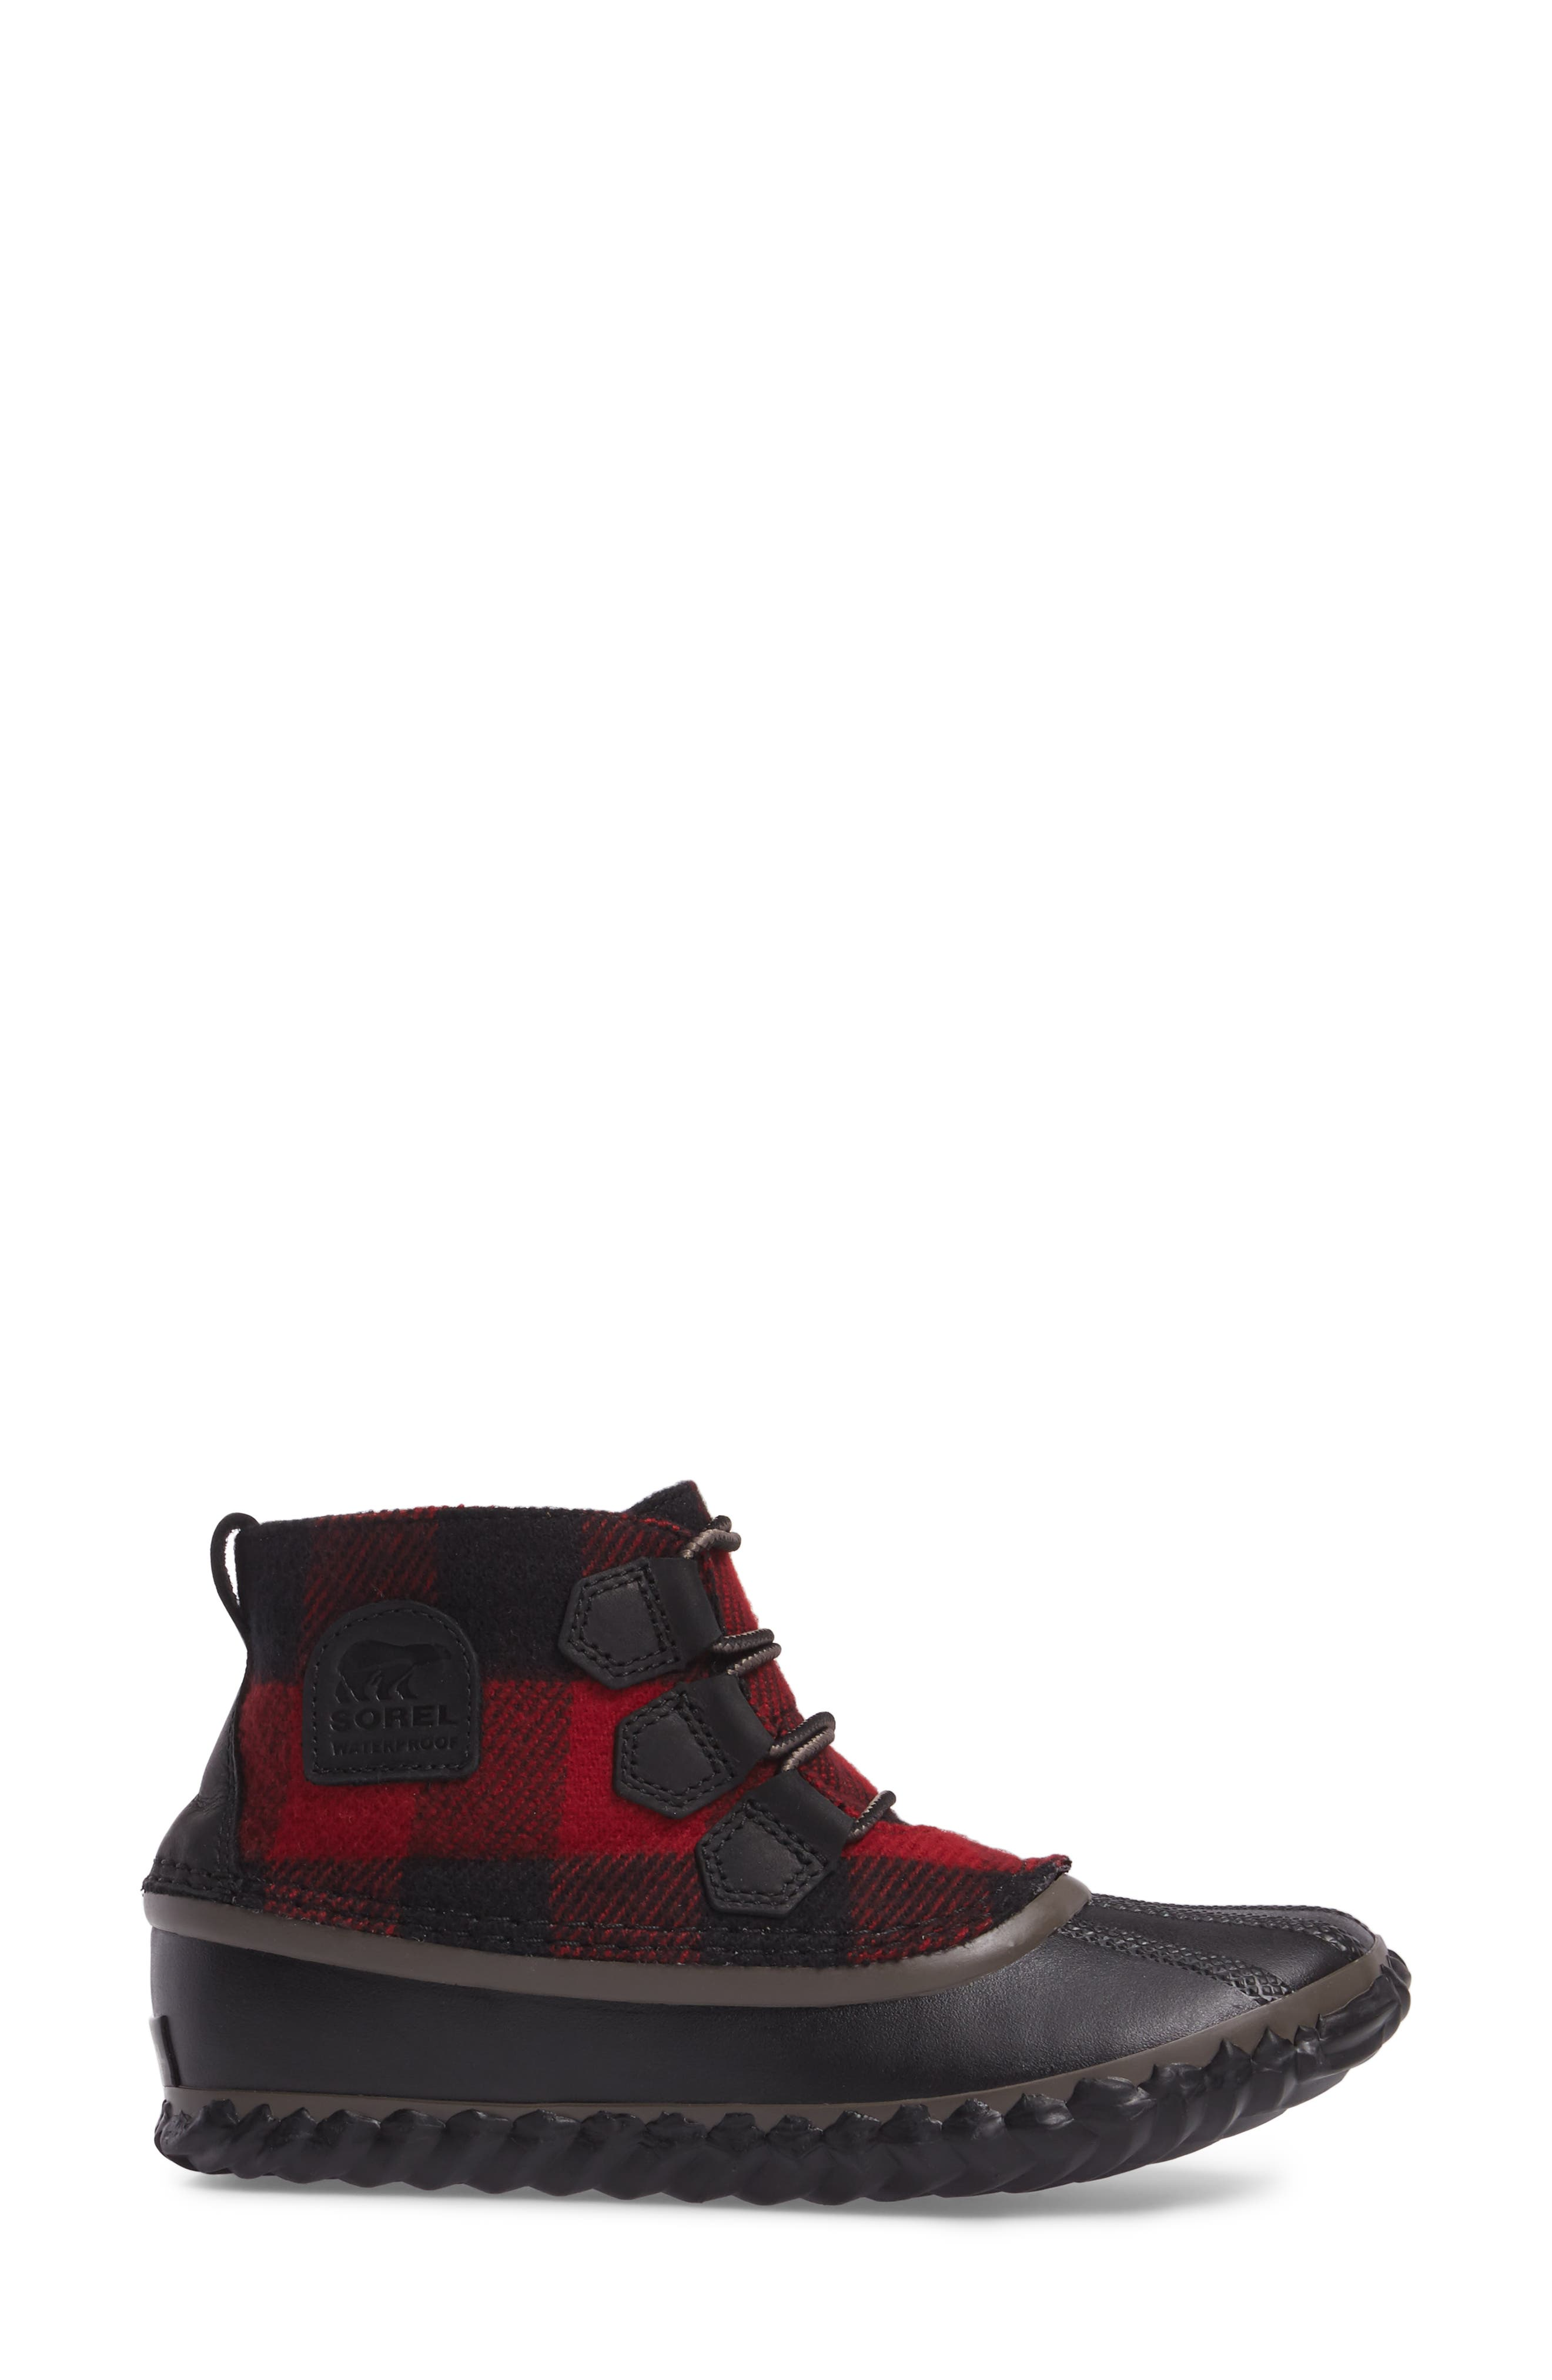 Alternate Image 3  - SOREL 'Out N About' Leather Boot (Women)